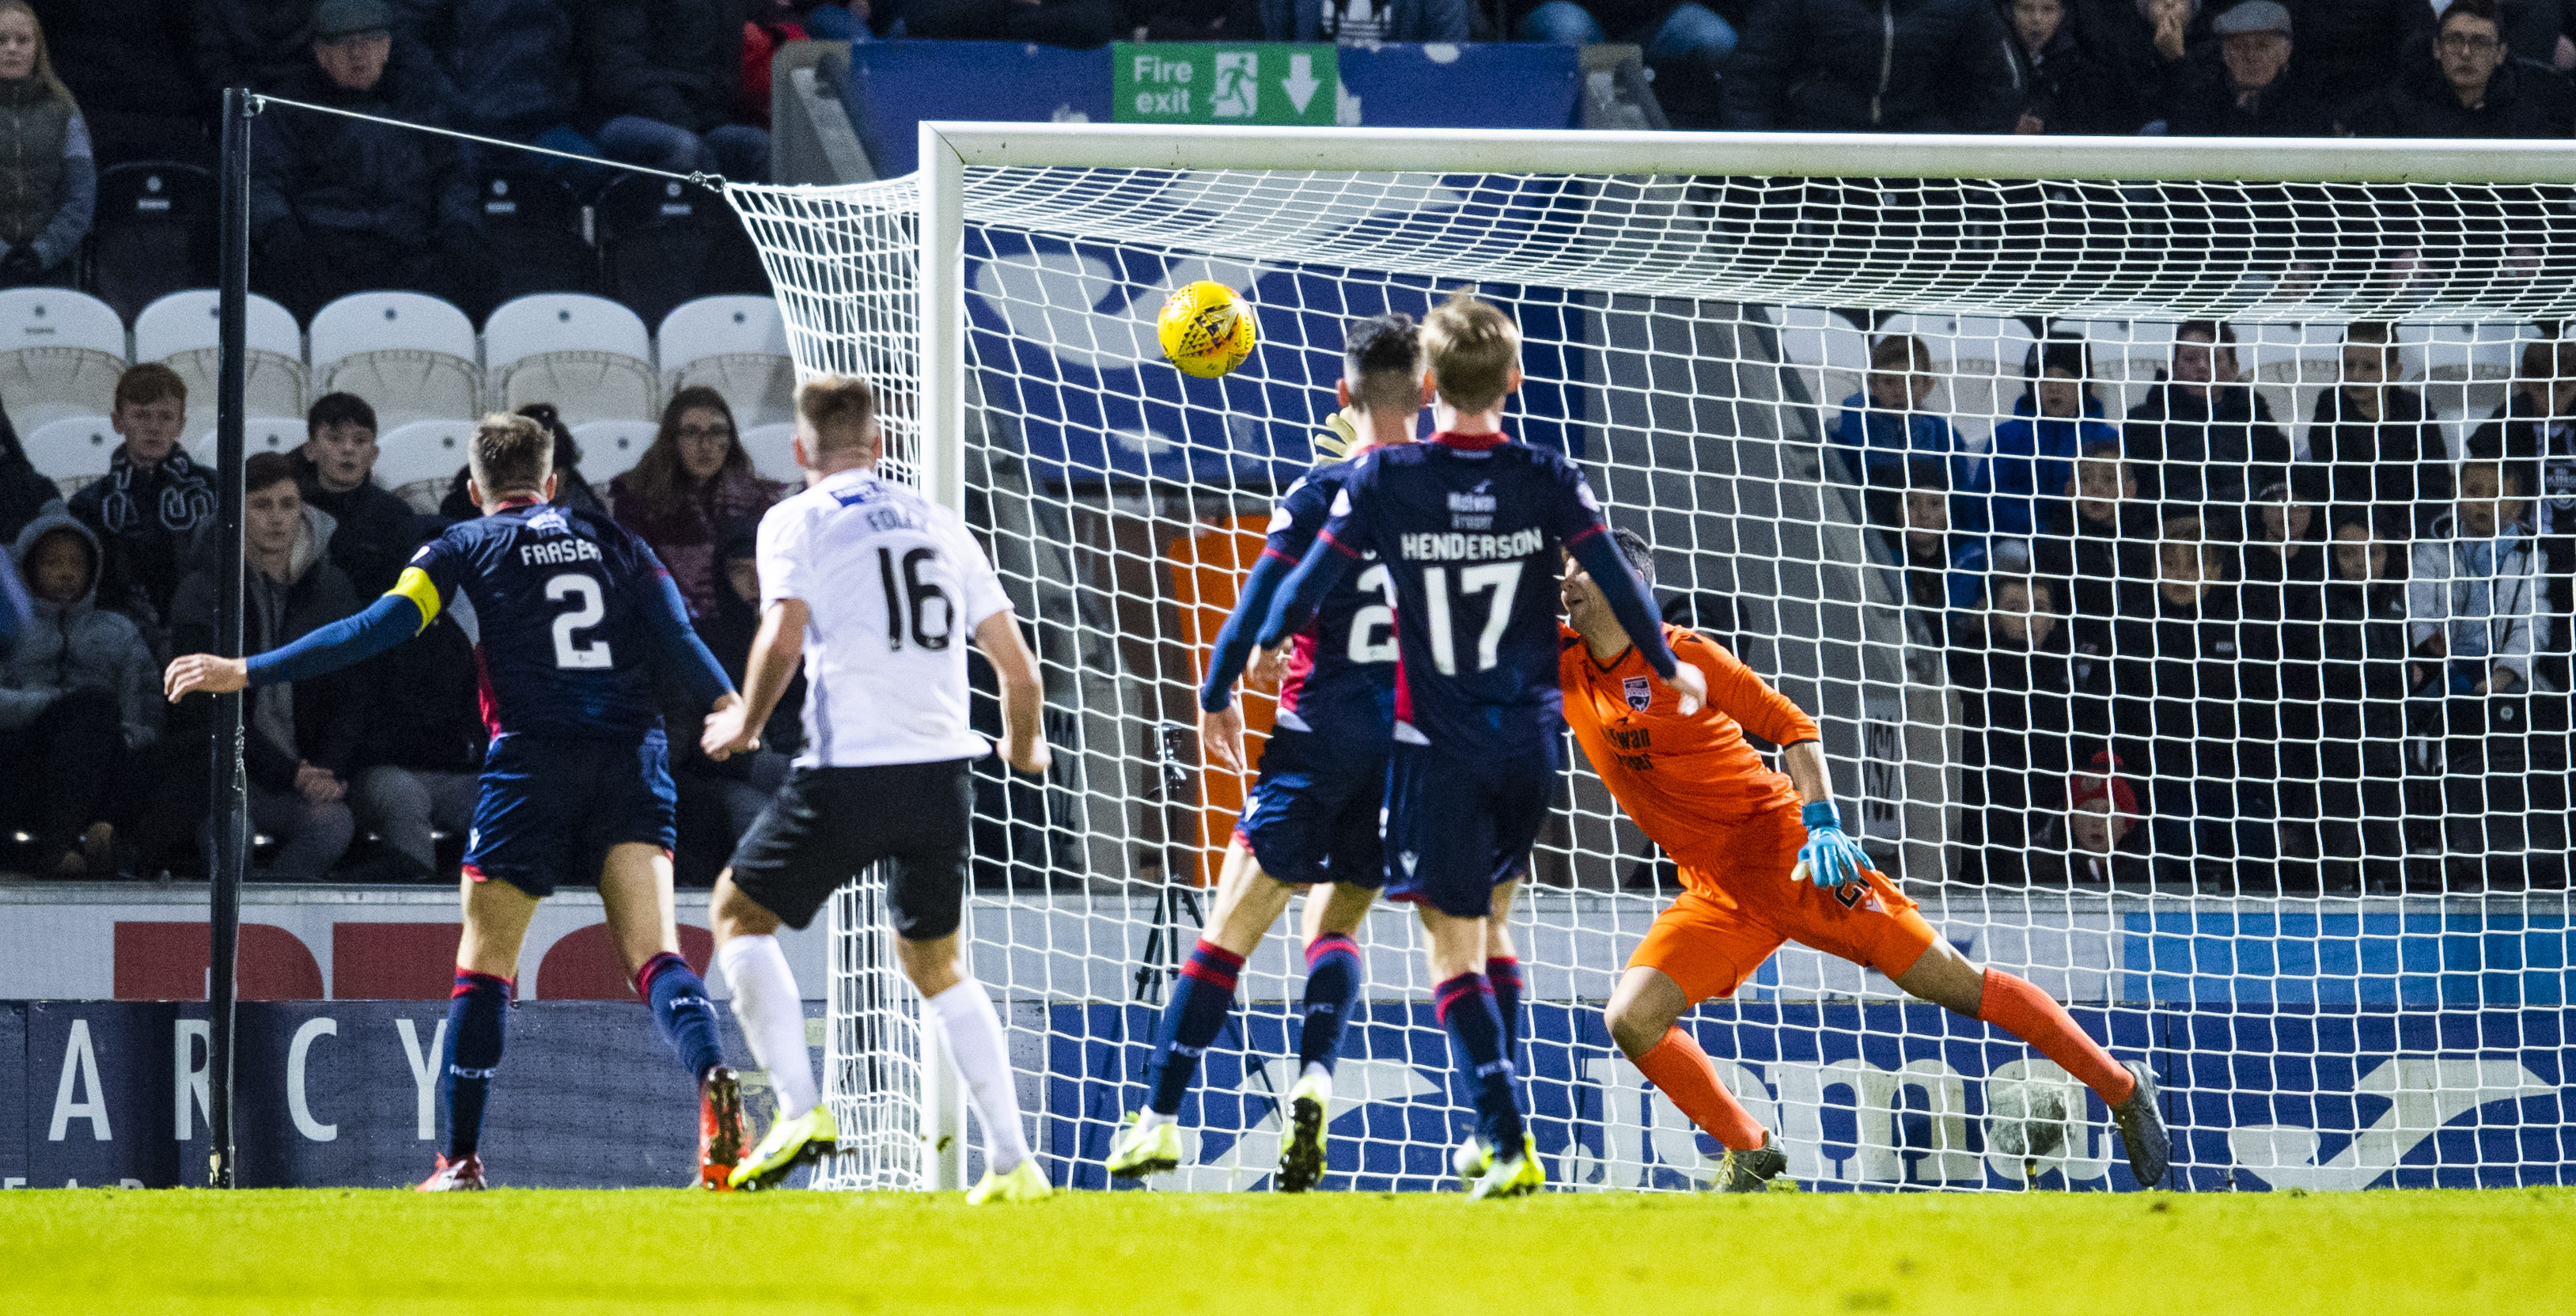 Sam Foley scores to make it 2-1 during the Ladbrokes Premiership match between St. Mirren and Ross County.